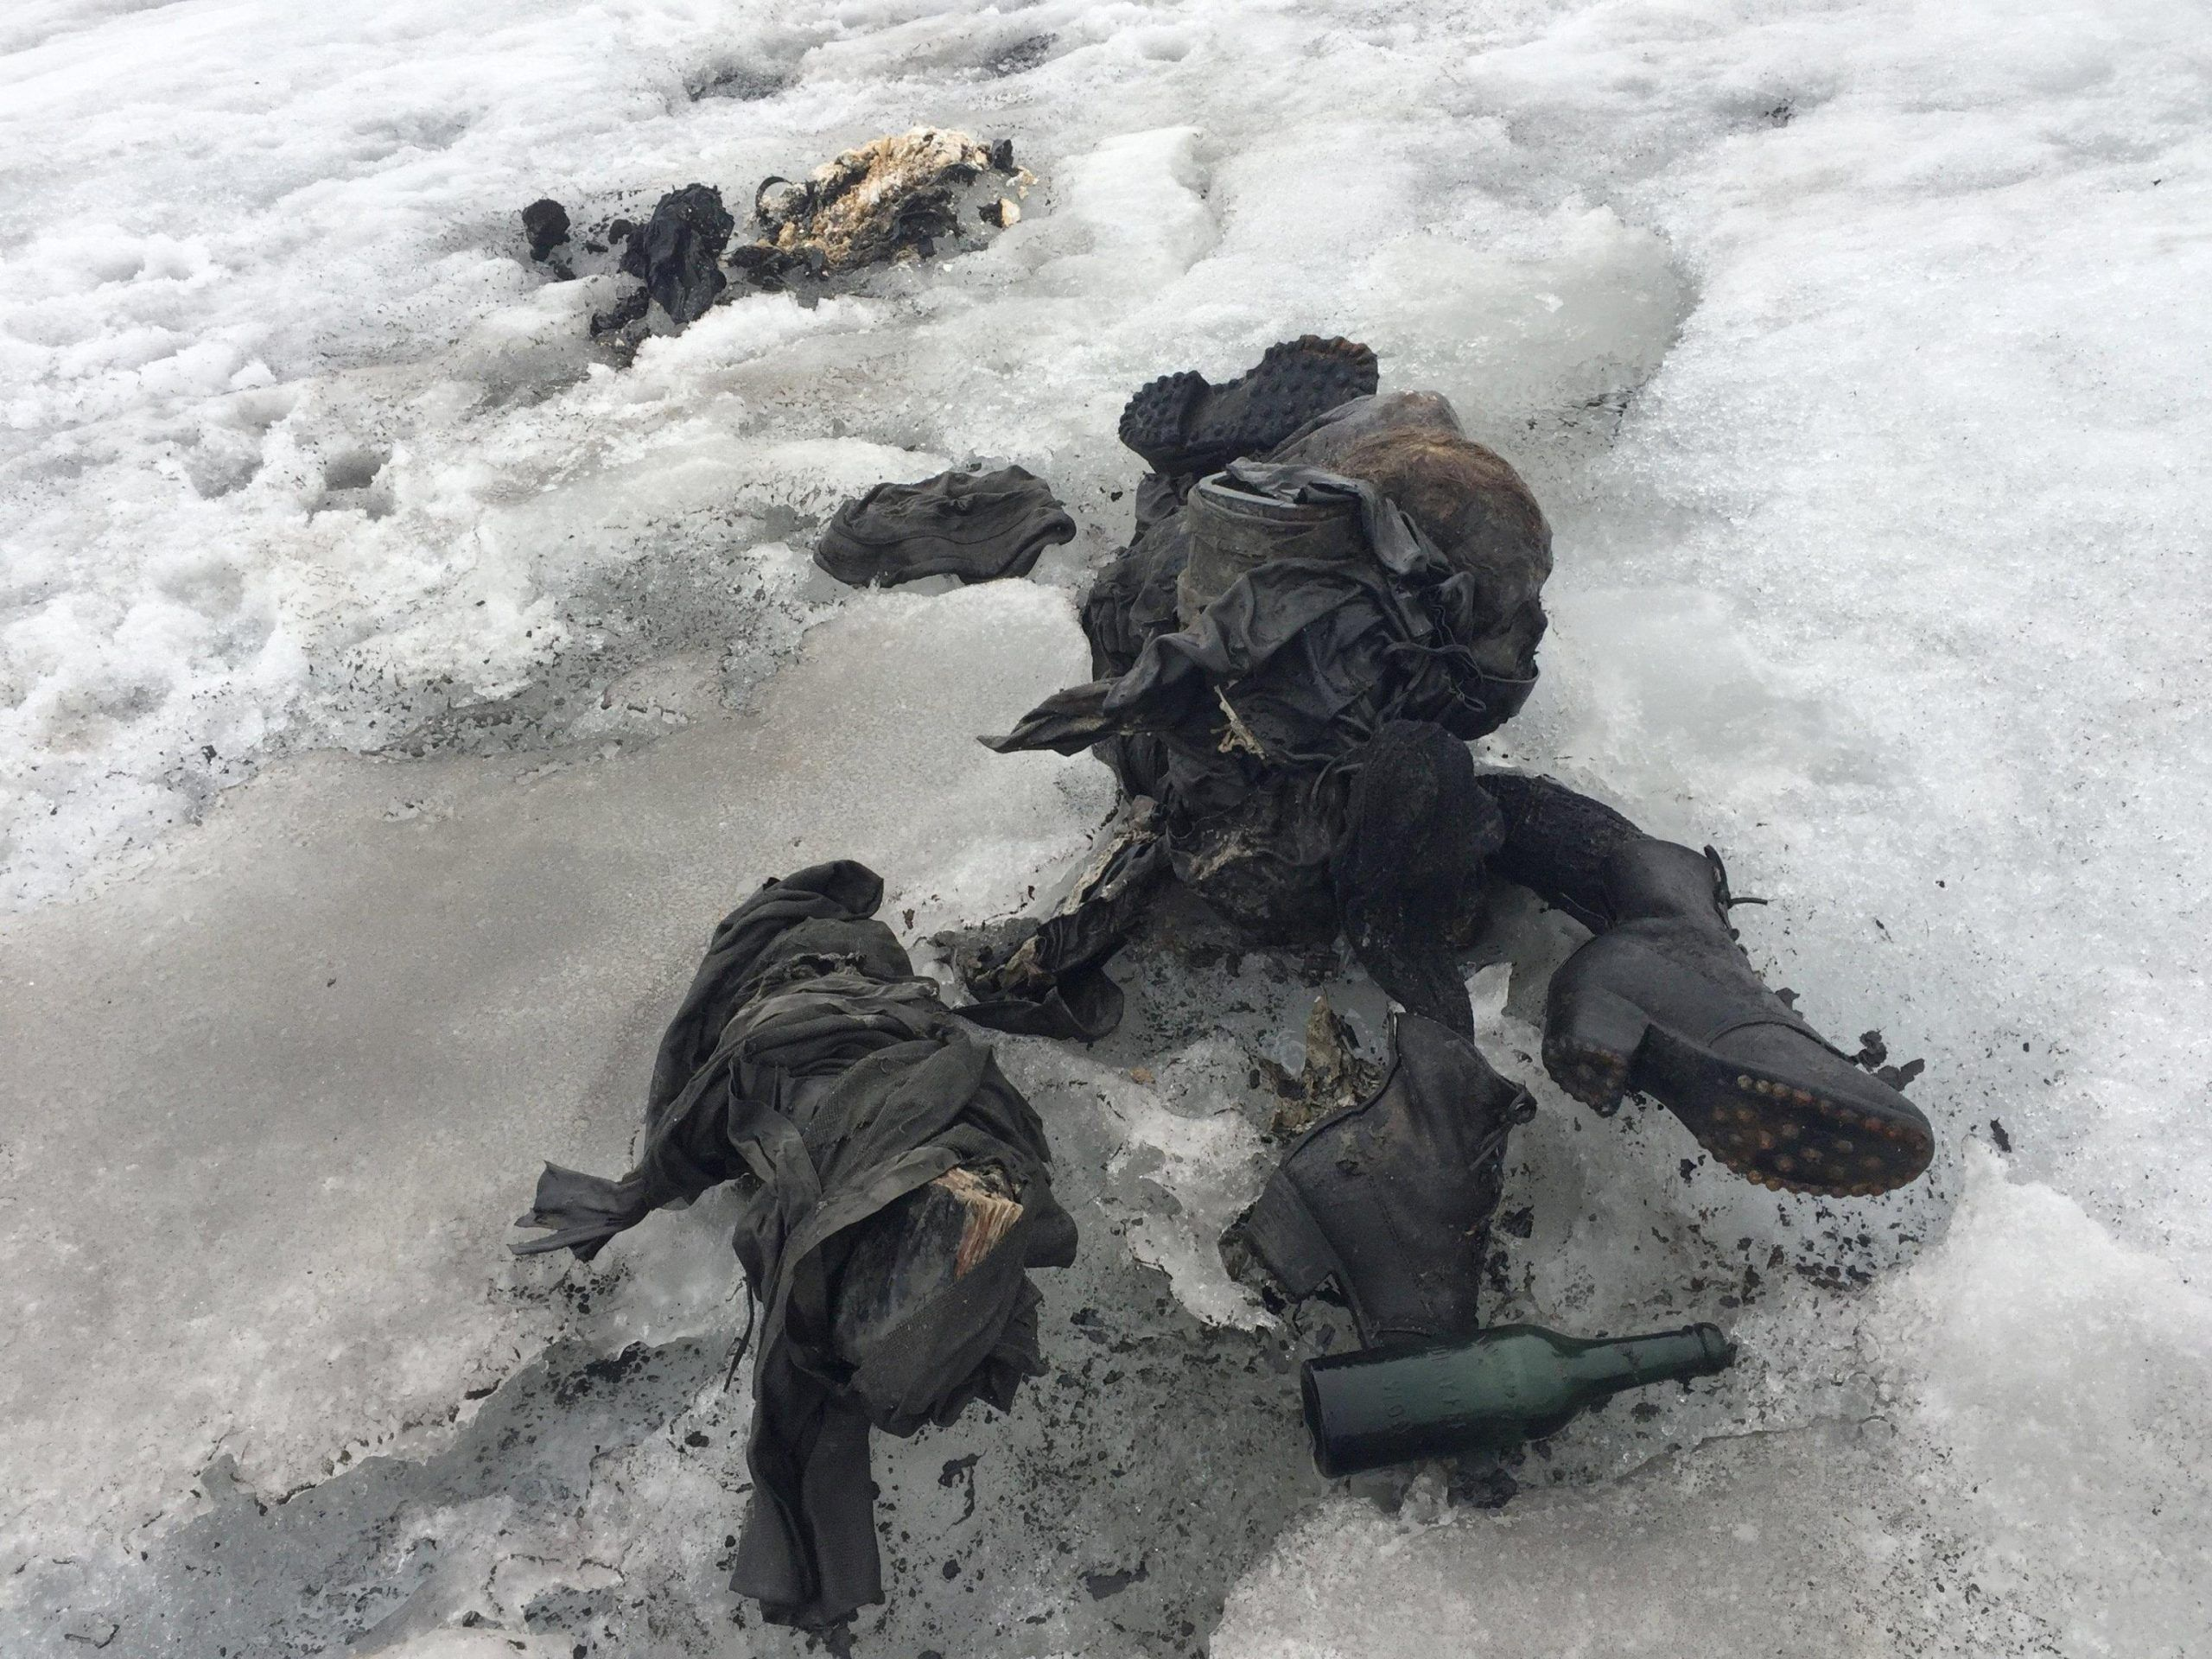 Bodies of couple found after being buried in ice for decades